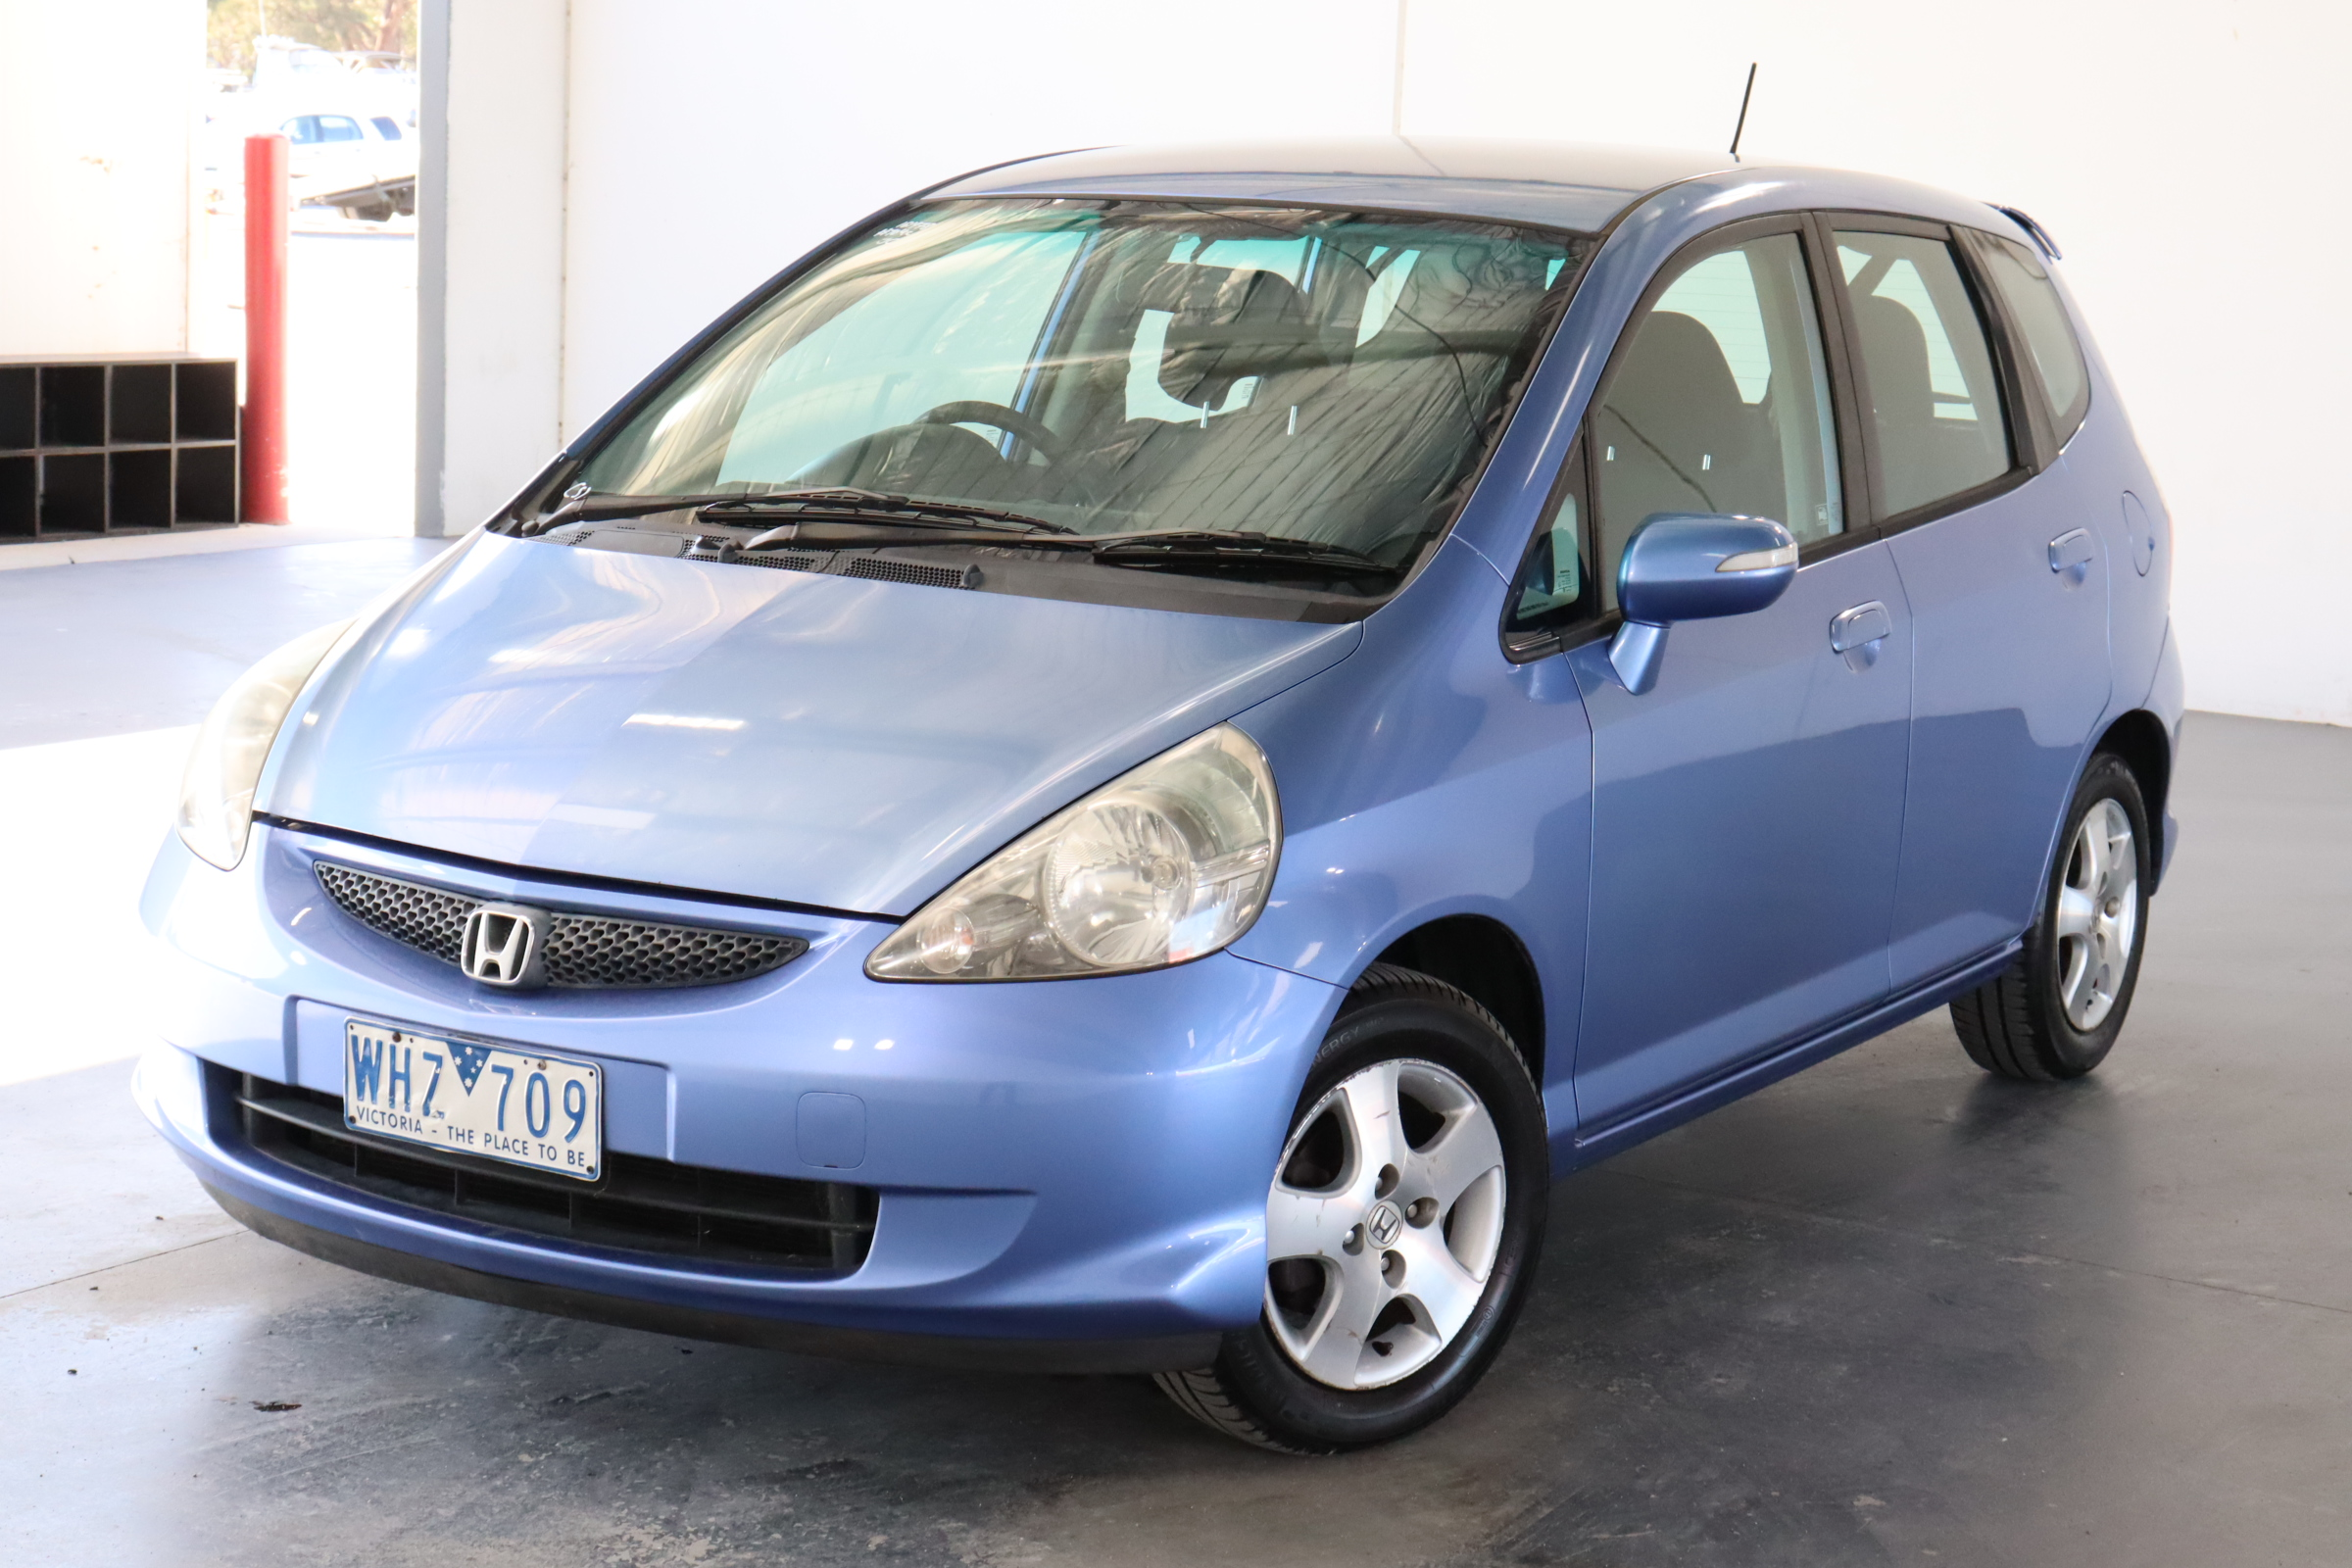 2008 Honda Jazz VTi GD Manual Hatchback